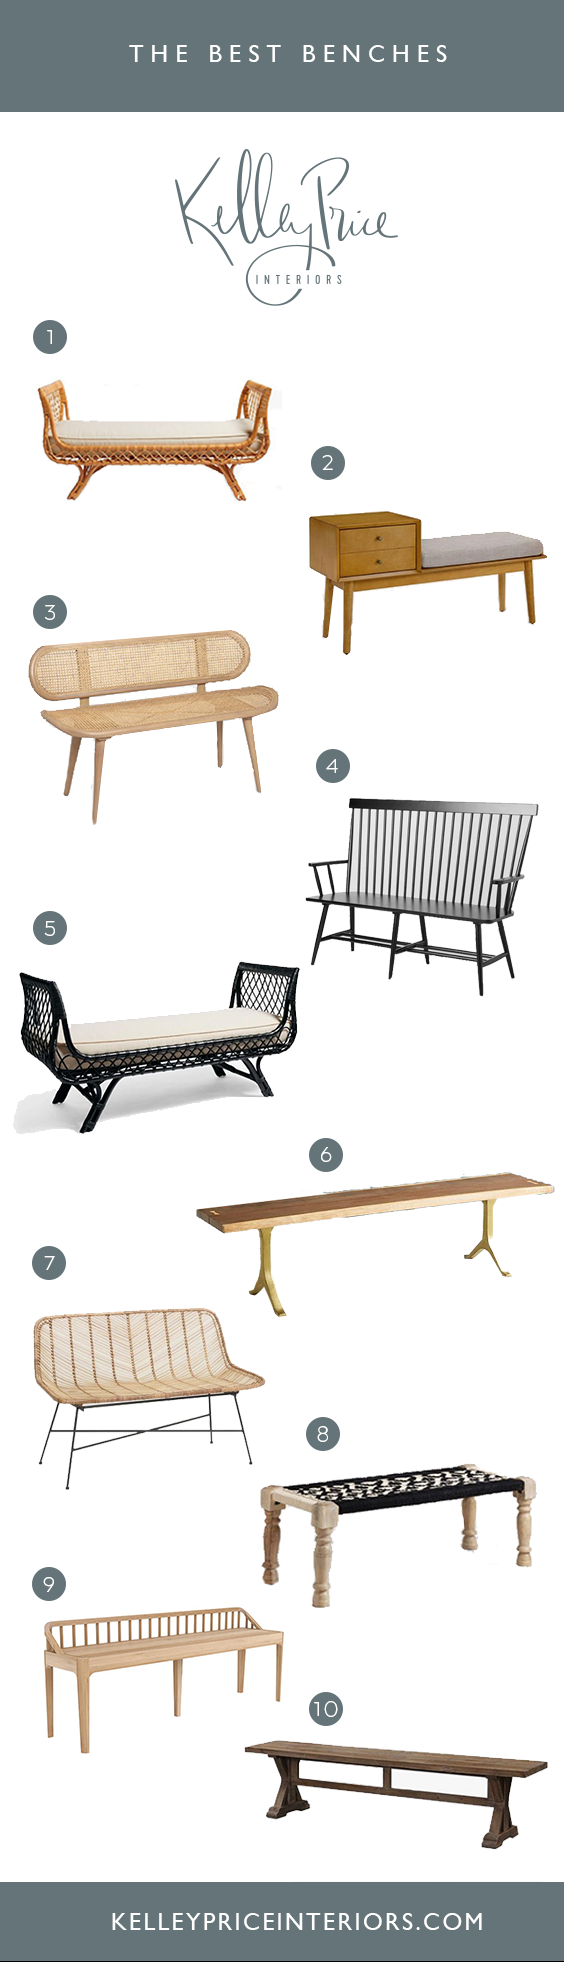 kelley price best benches product roundup.png